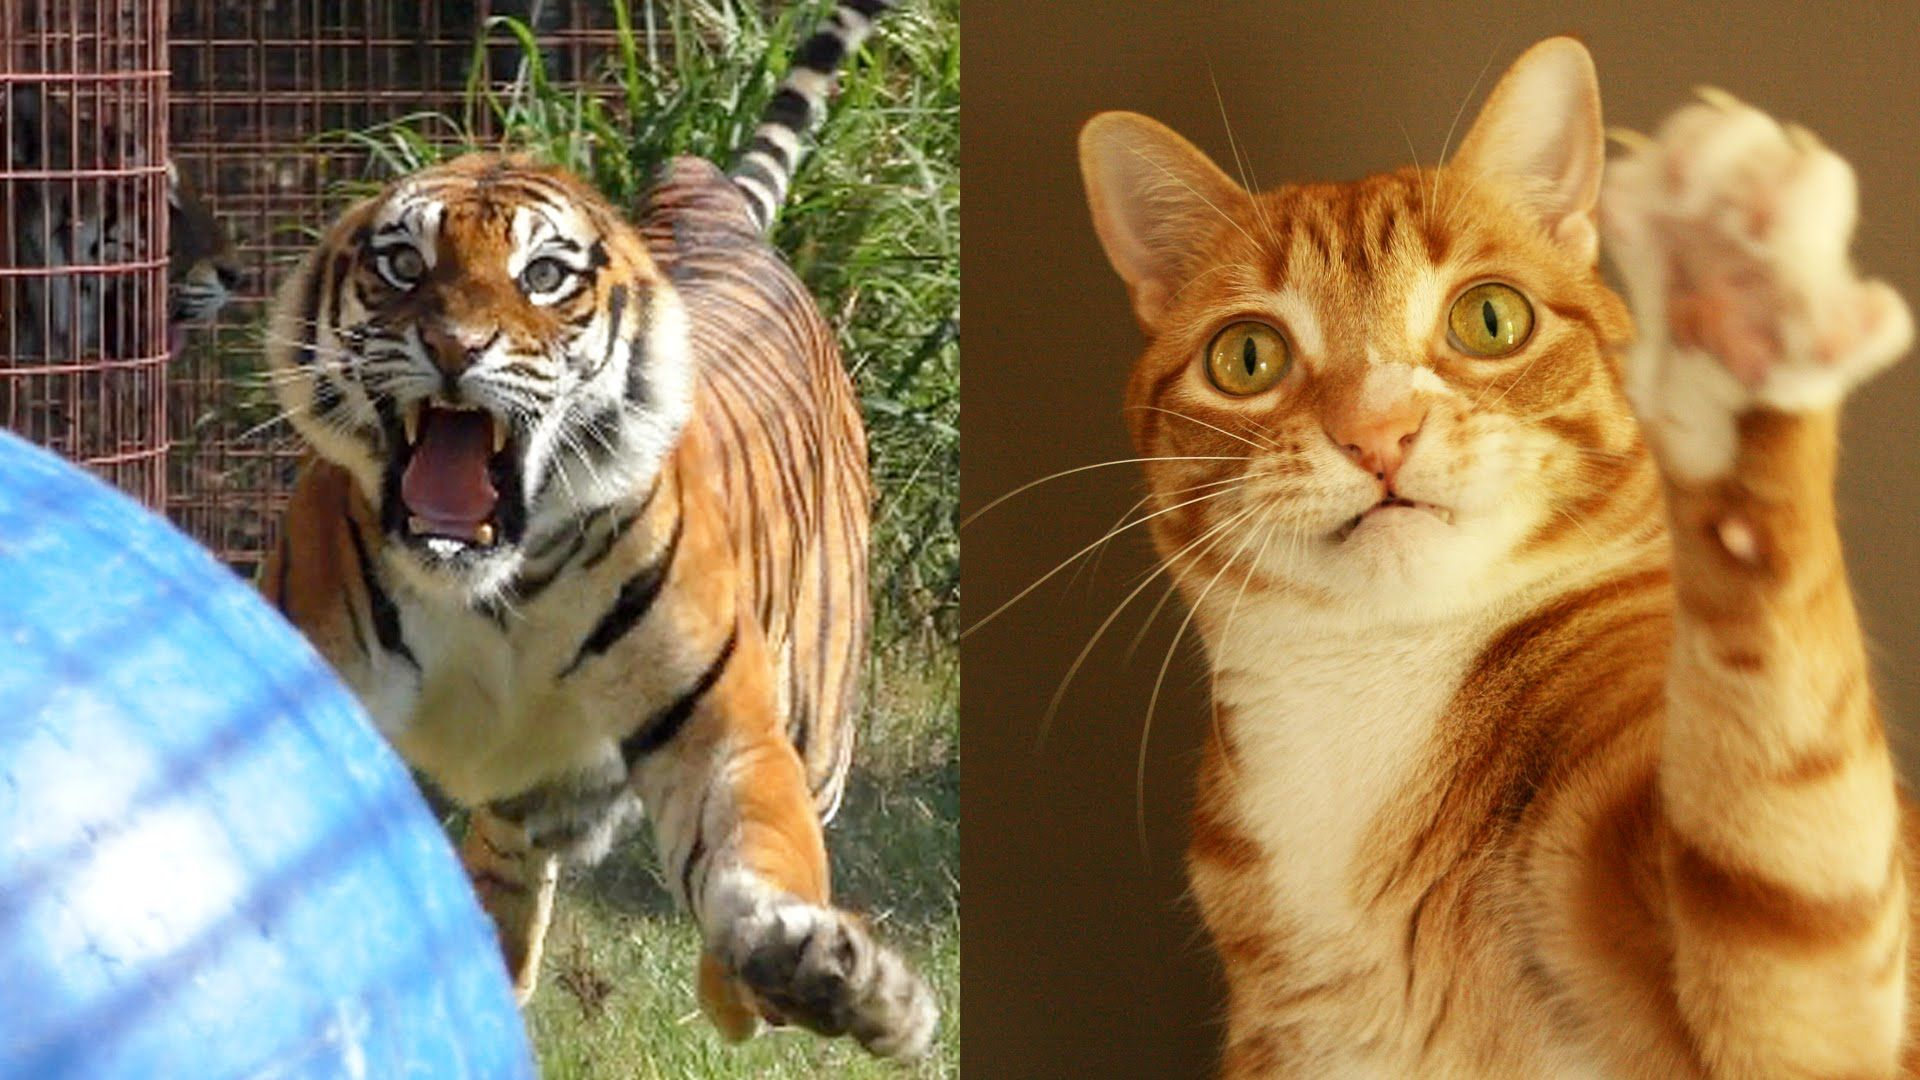 Little Cats Helping BIG Cats! #TreatTheirWildSide - YouTube